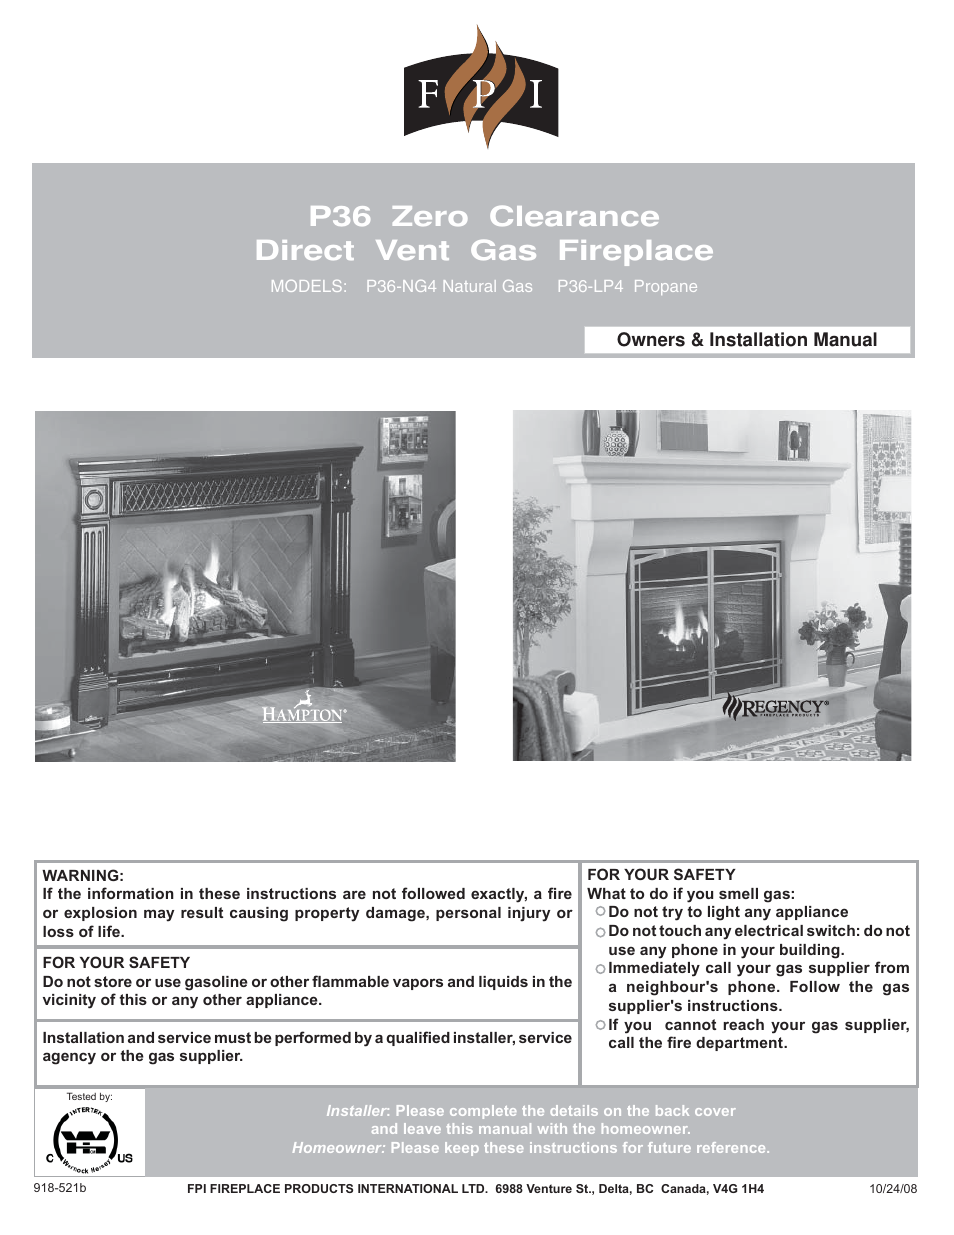 Regency Zero Clearance Direct Vent Gas Fireplace P36-LP4 User ...